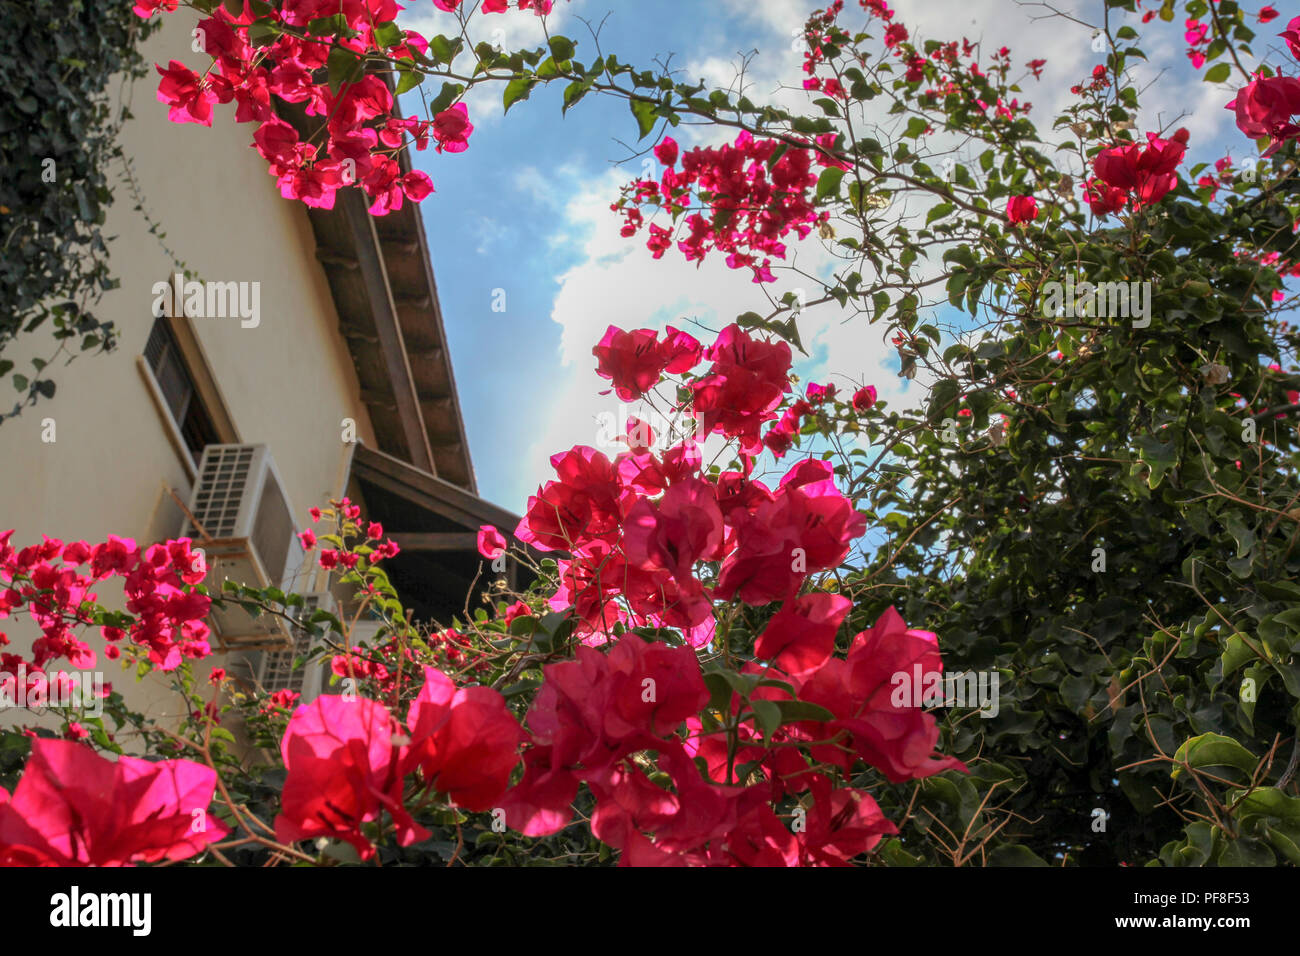 flowering bougainvillea plants Photographed in Neve Tzedek, Tel Aviv, Israel in October Stock Photo